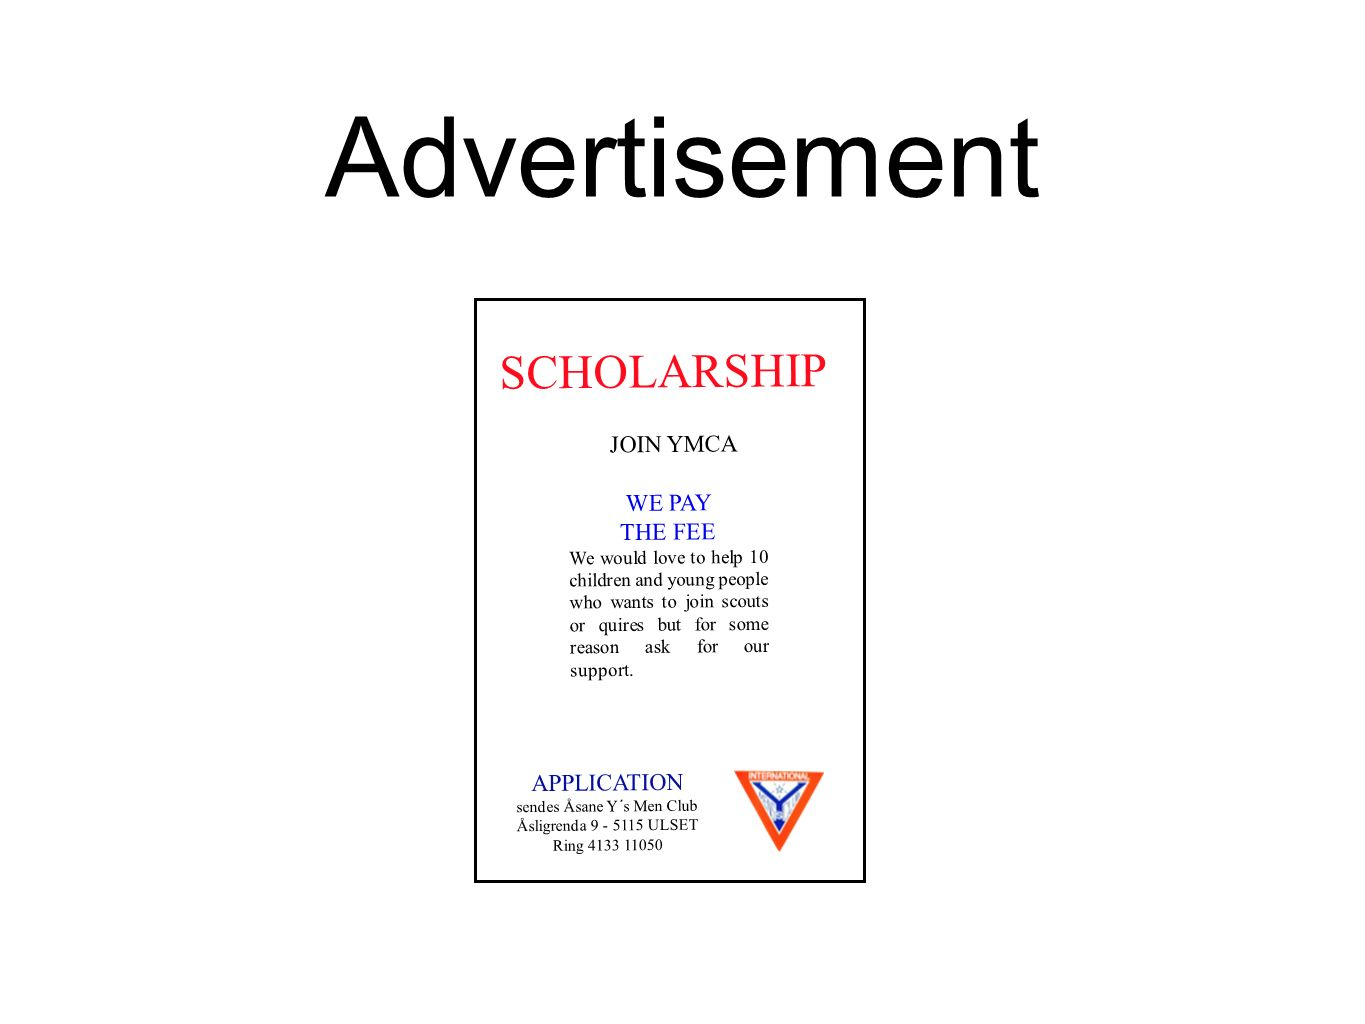 SCHOLARSHIP Advertisement JOIN YMCA WE PAY THE FEE We would love to help 10 children and young people who wants to join scouts or quires but for some reason ask for our support.